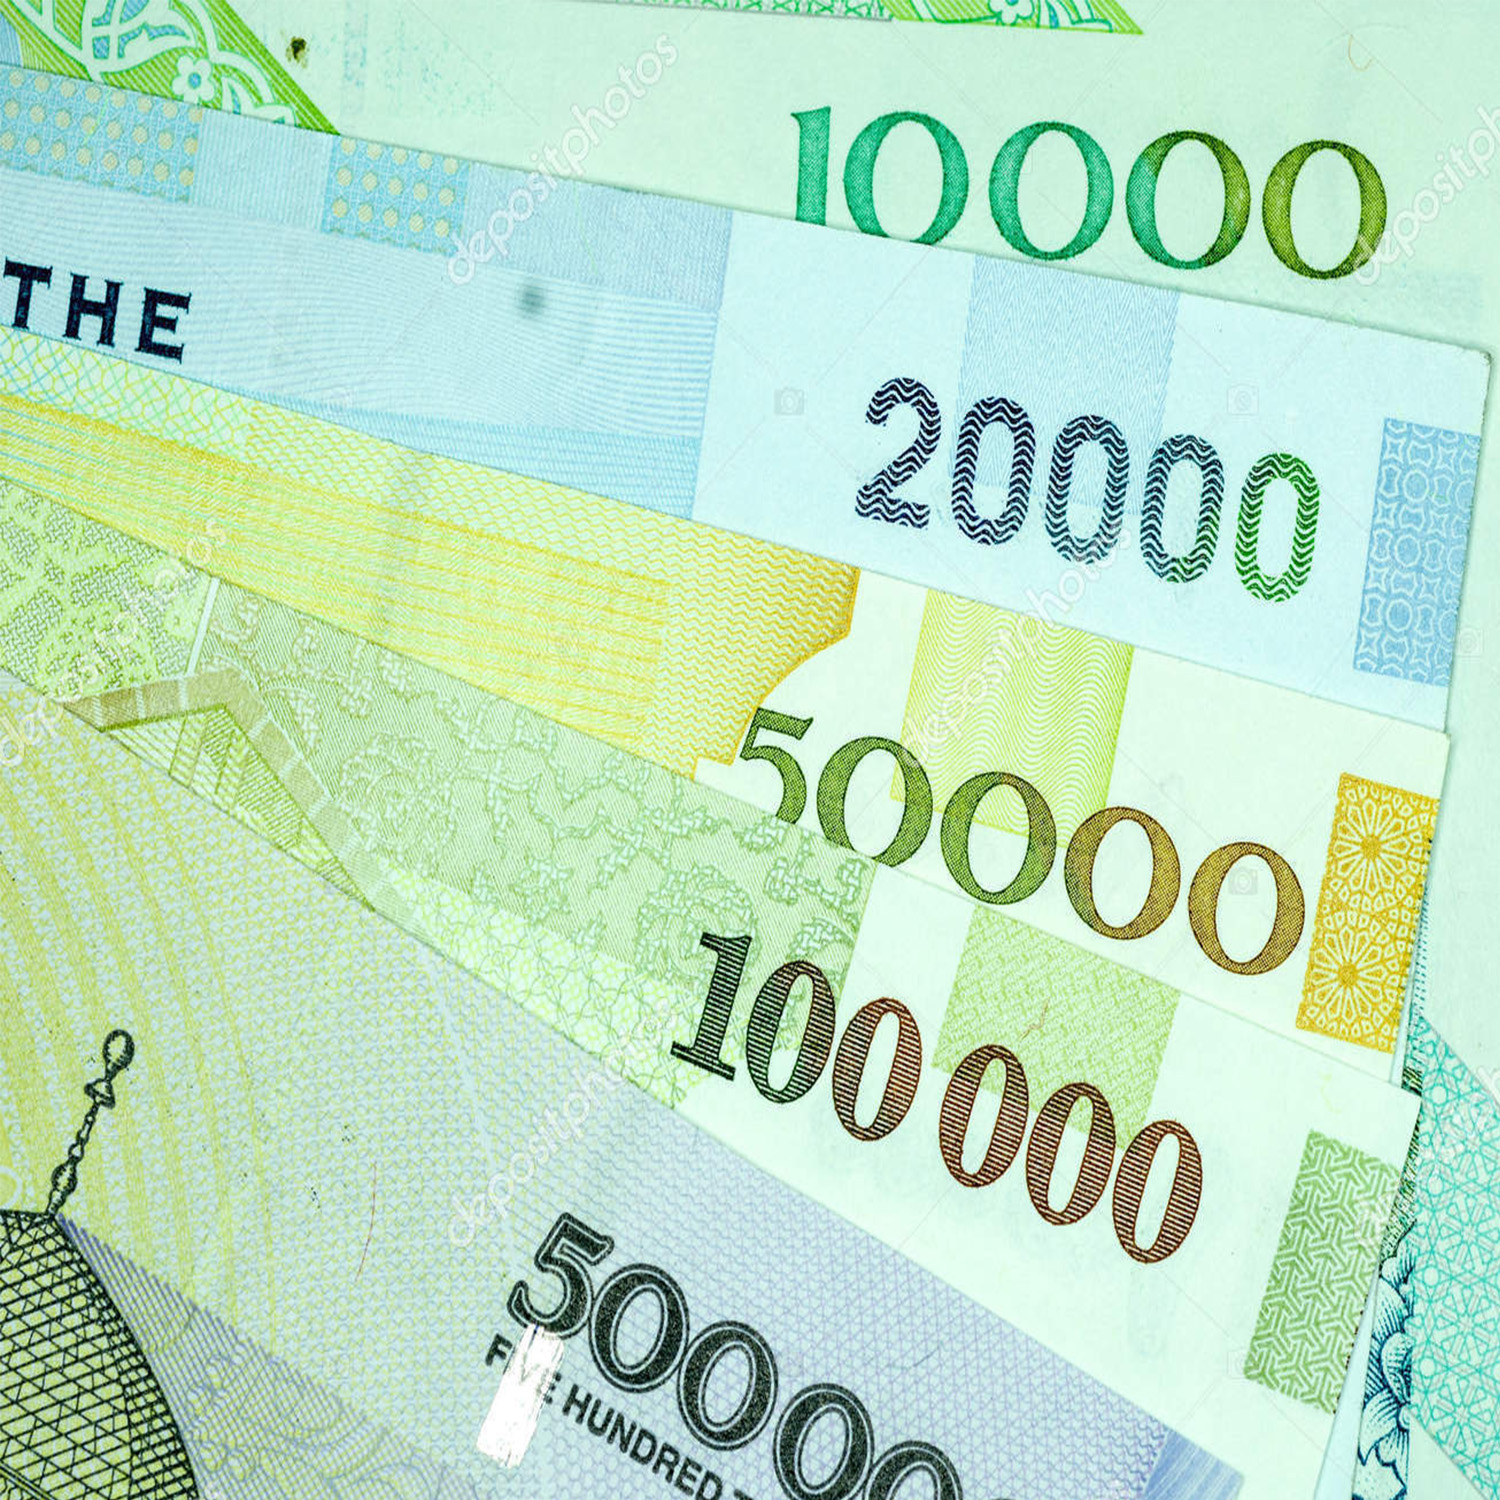 Iran Currency And Currency In Iran And Iranian Money And Money In Iran